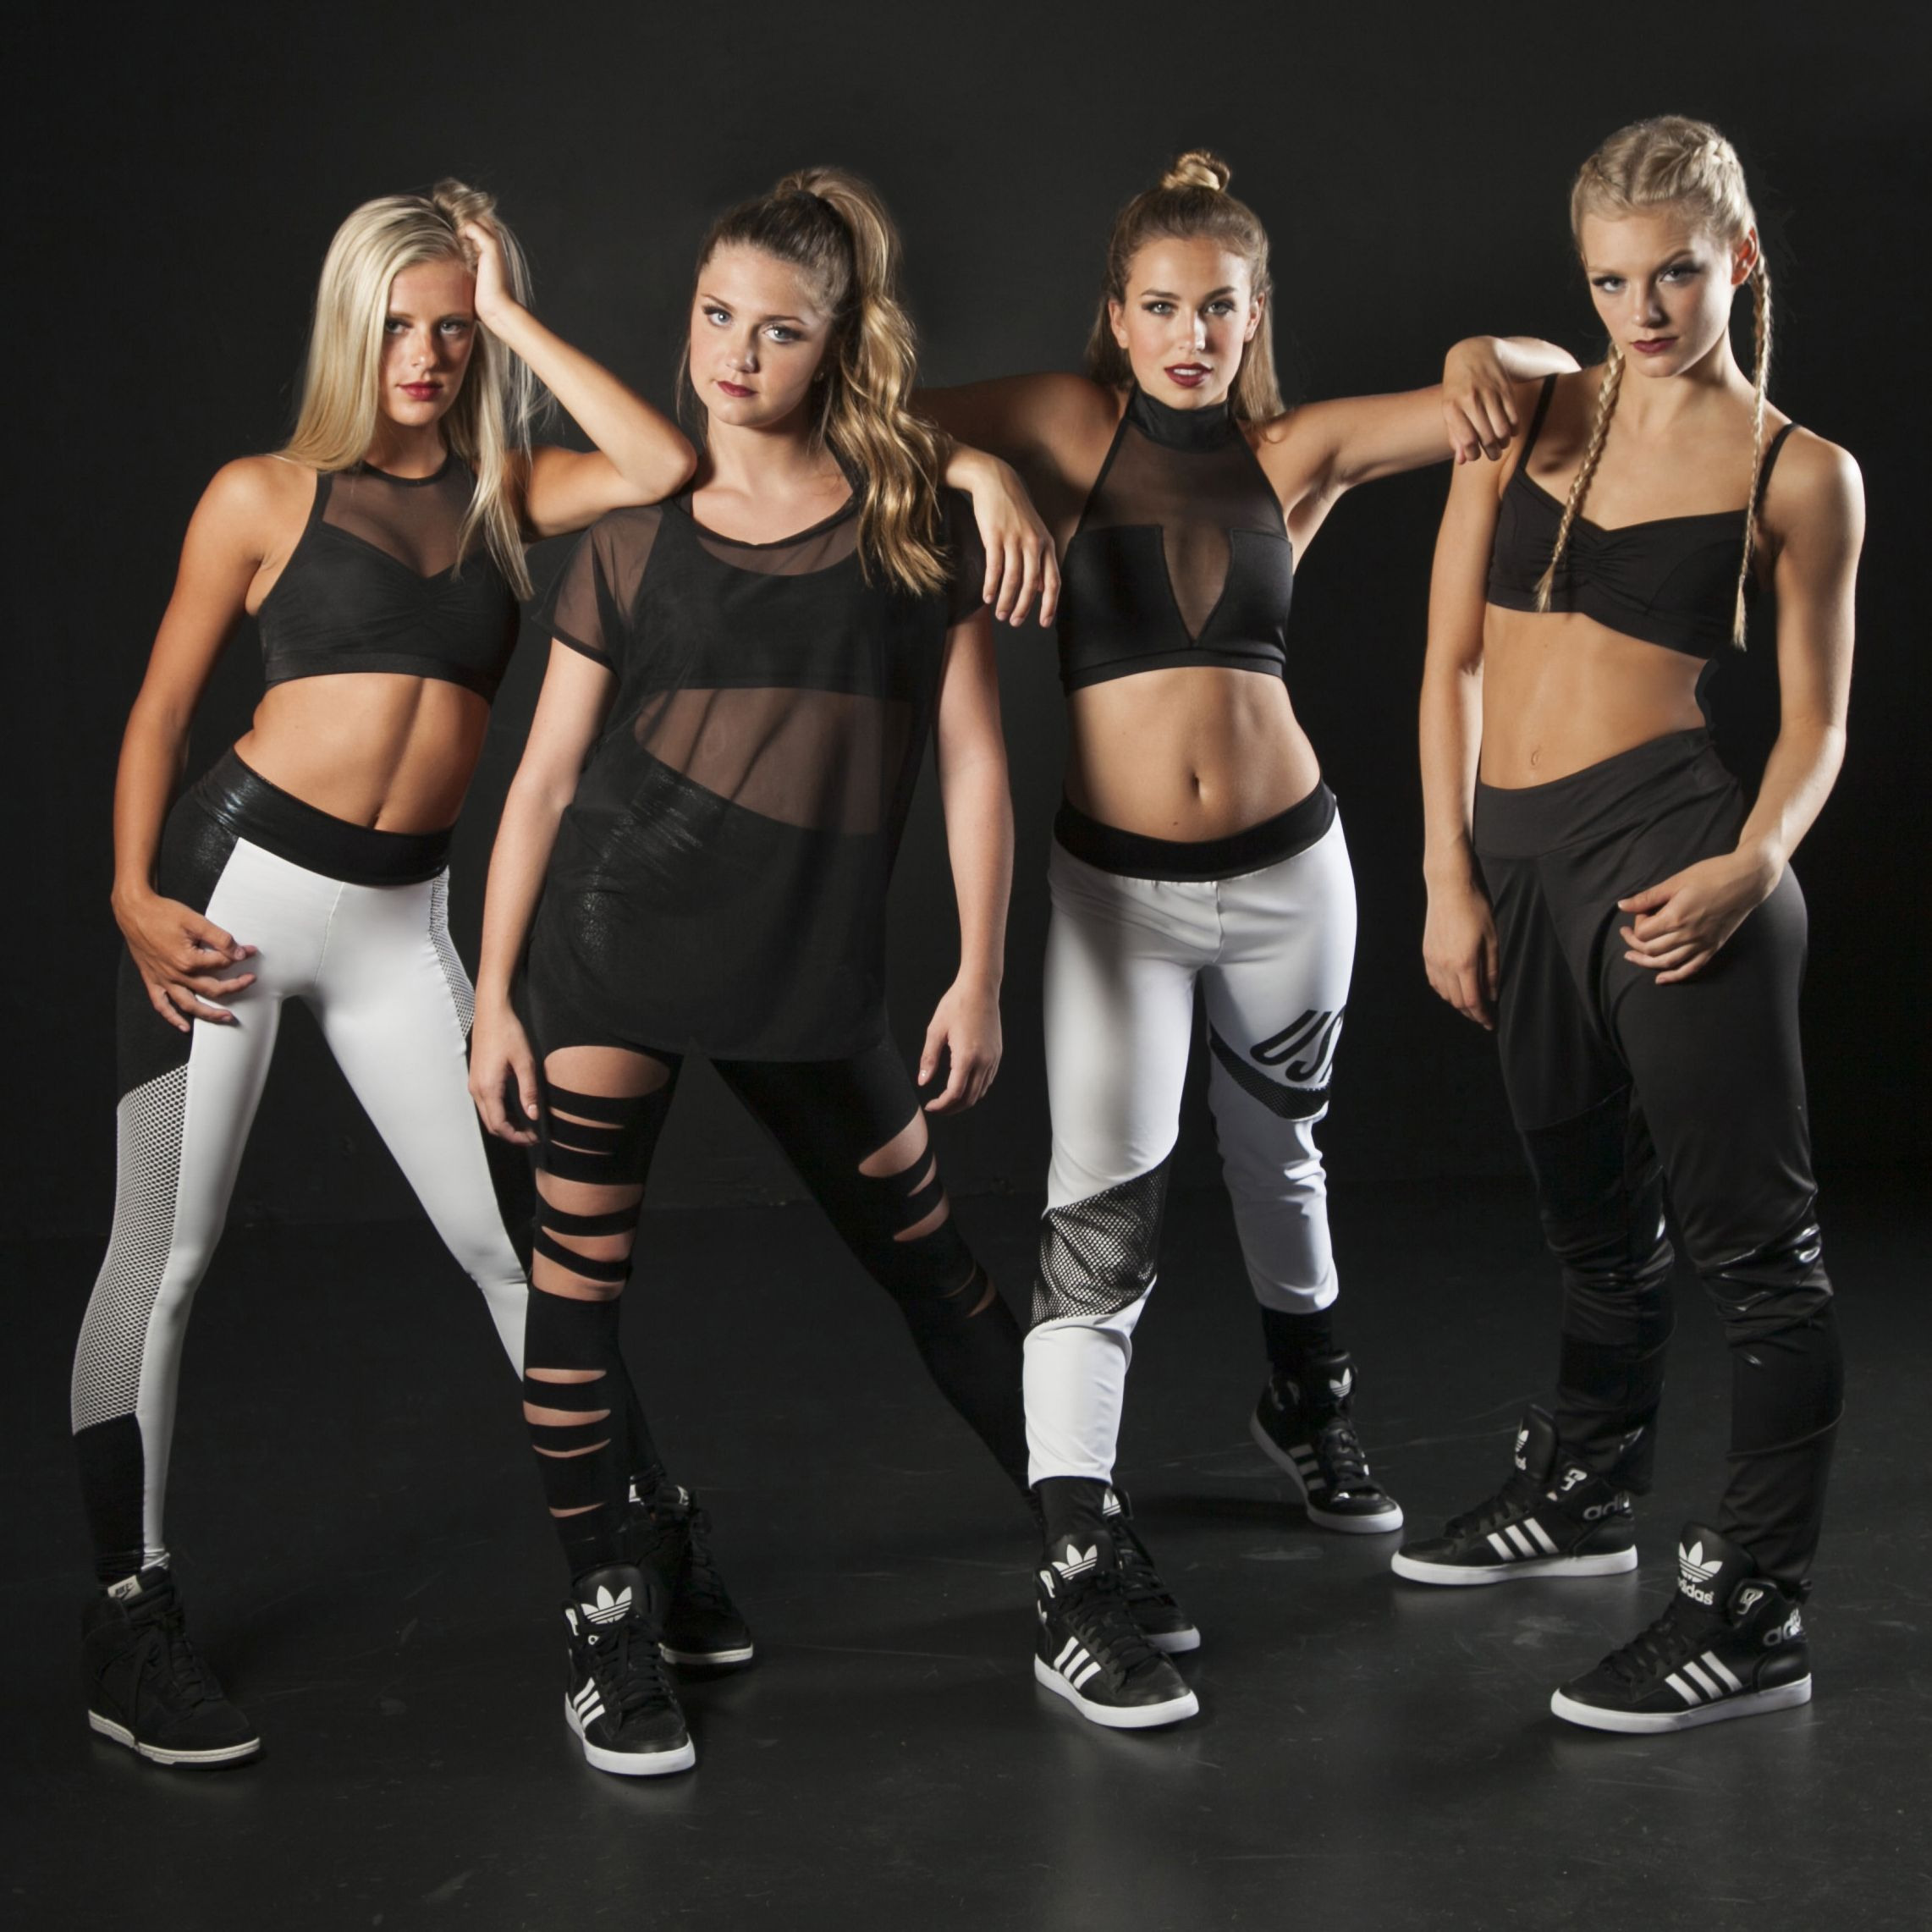 Top 9 Hip Hop Dance Costume Trends - Check out the full list on The Line  Up s blog! d354b415bb5